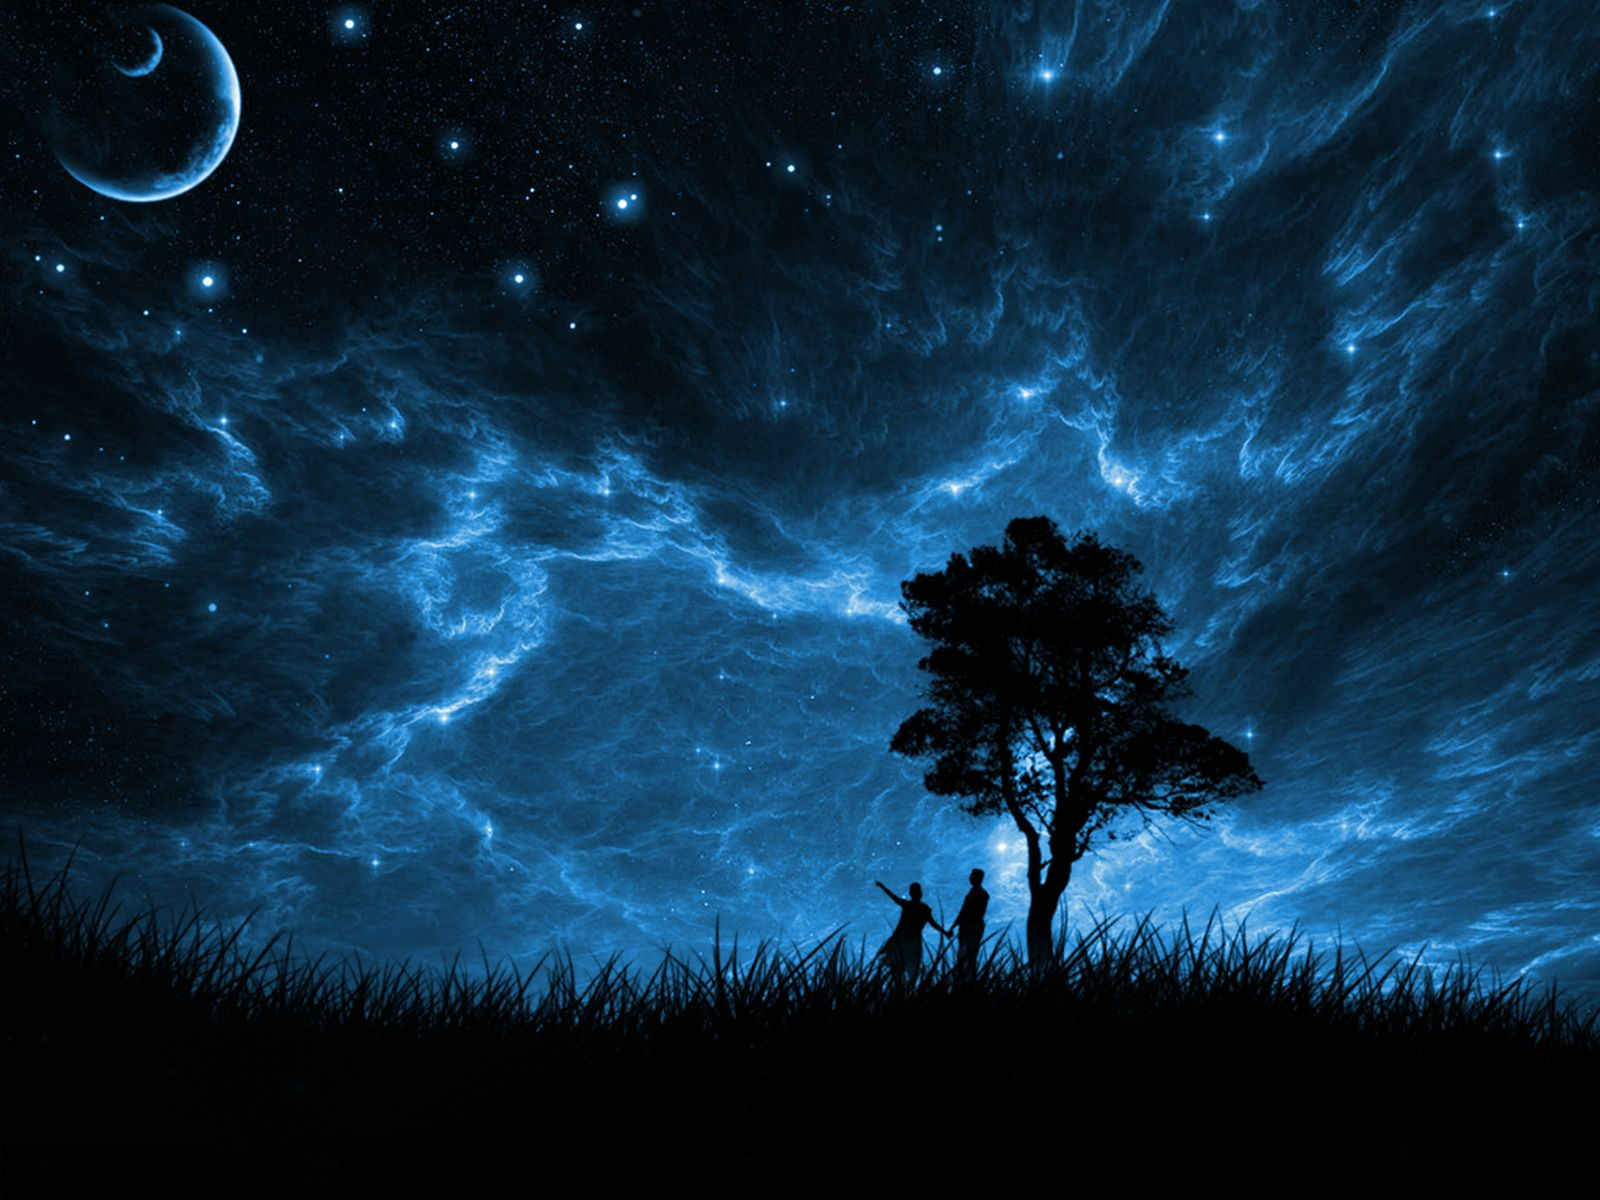 beautiful starry night sky with moon painting - Google ...